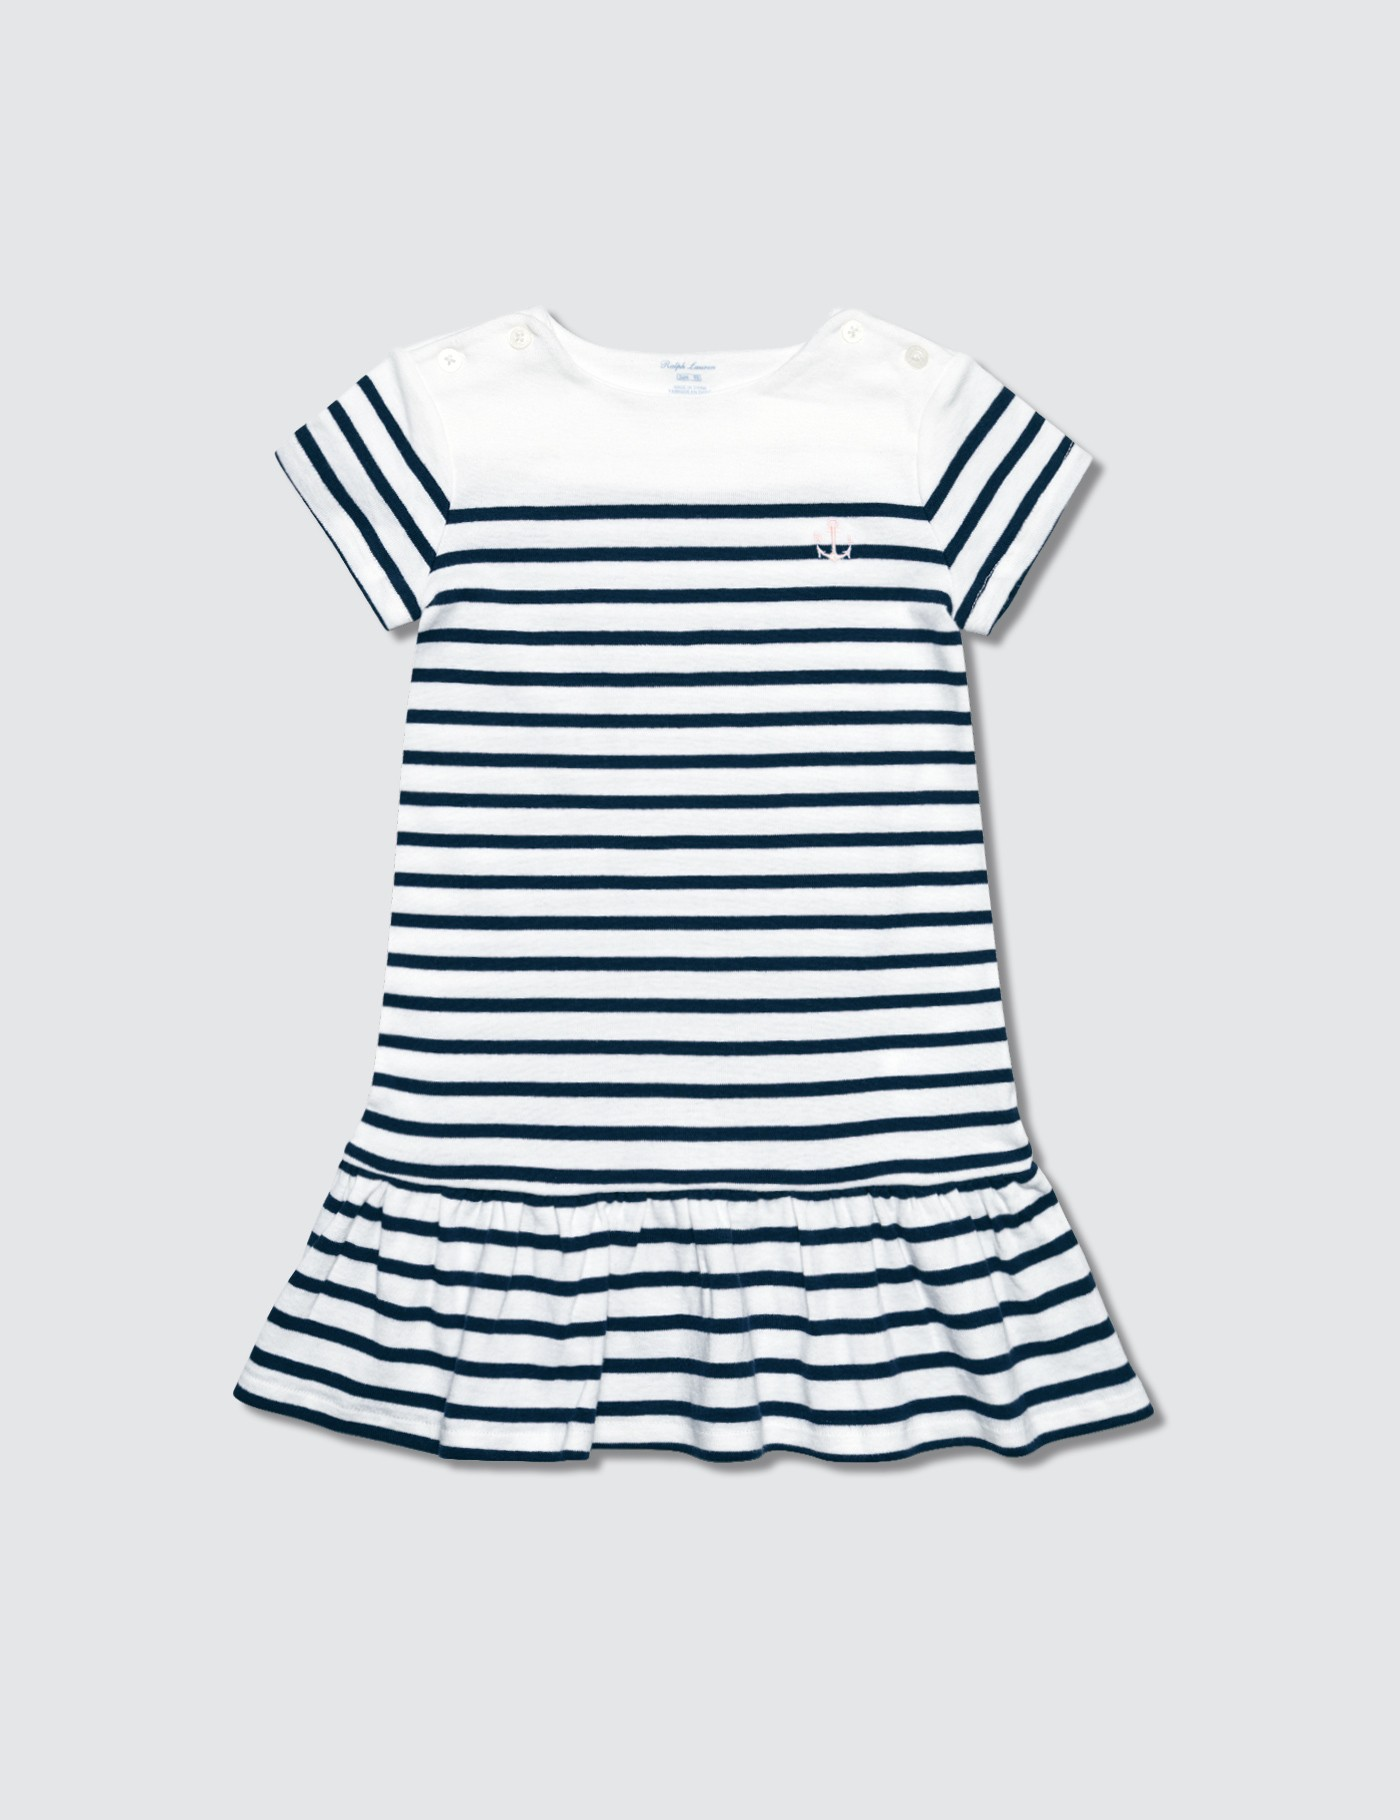 Clothing, Shoes & Accessories Kids' Clothing, Shoes & Accs Brand New Junior Msgm Dress In White Rrp £175 Age 10